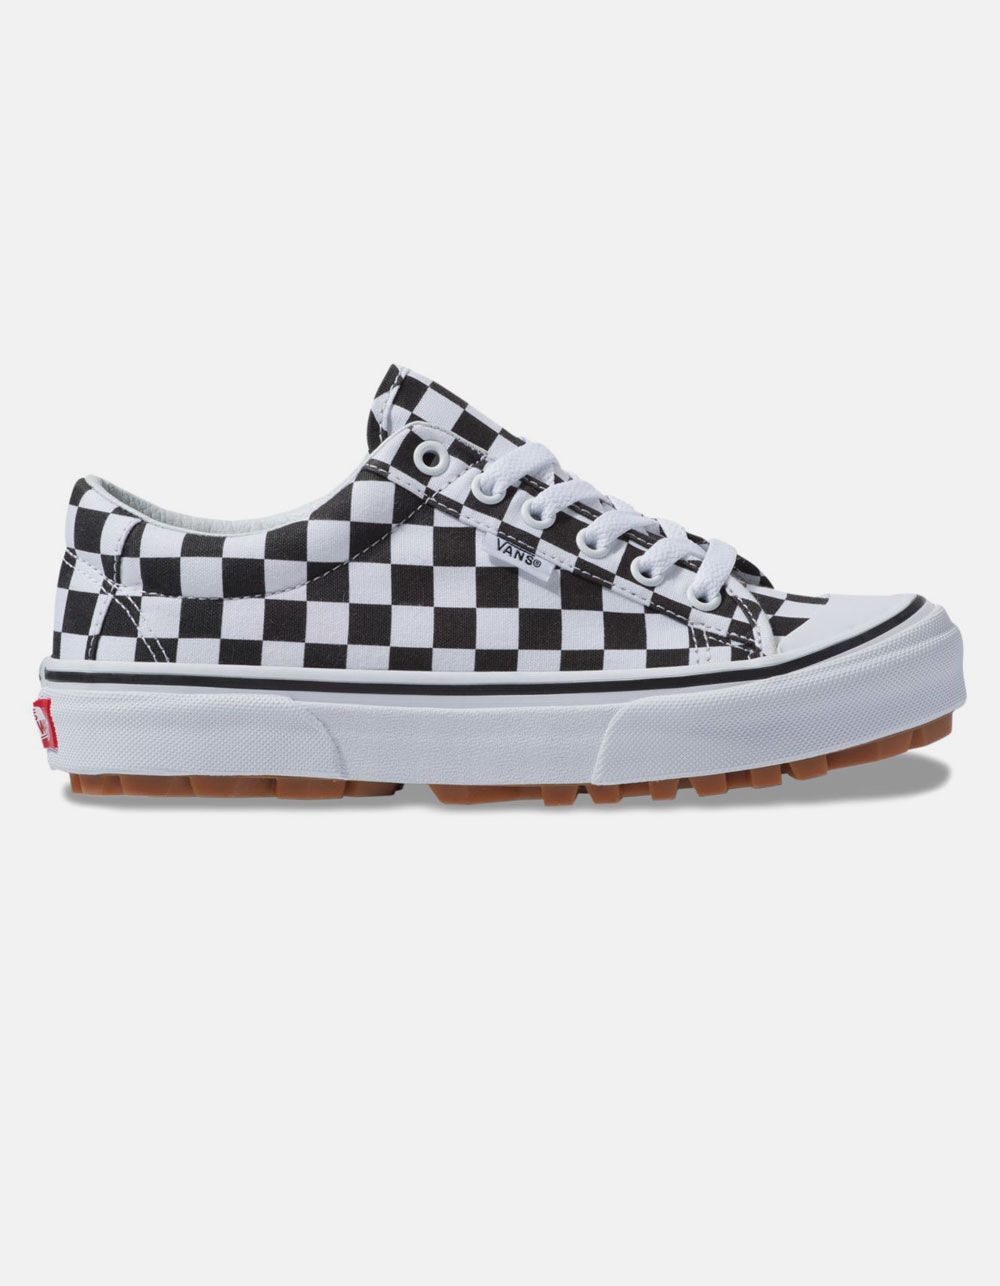 VANS STYLE 29 CHECKERBOARD & TRUE WHITE SHOES